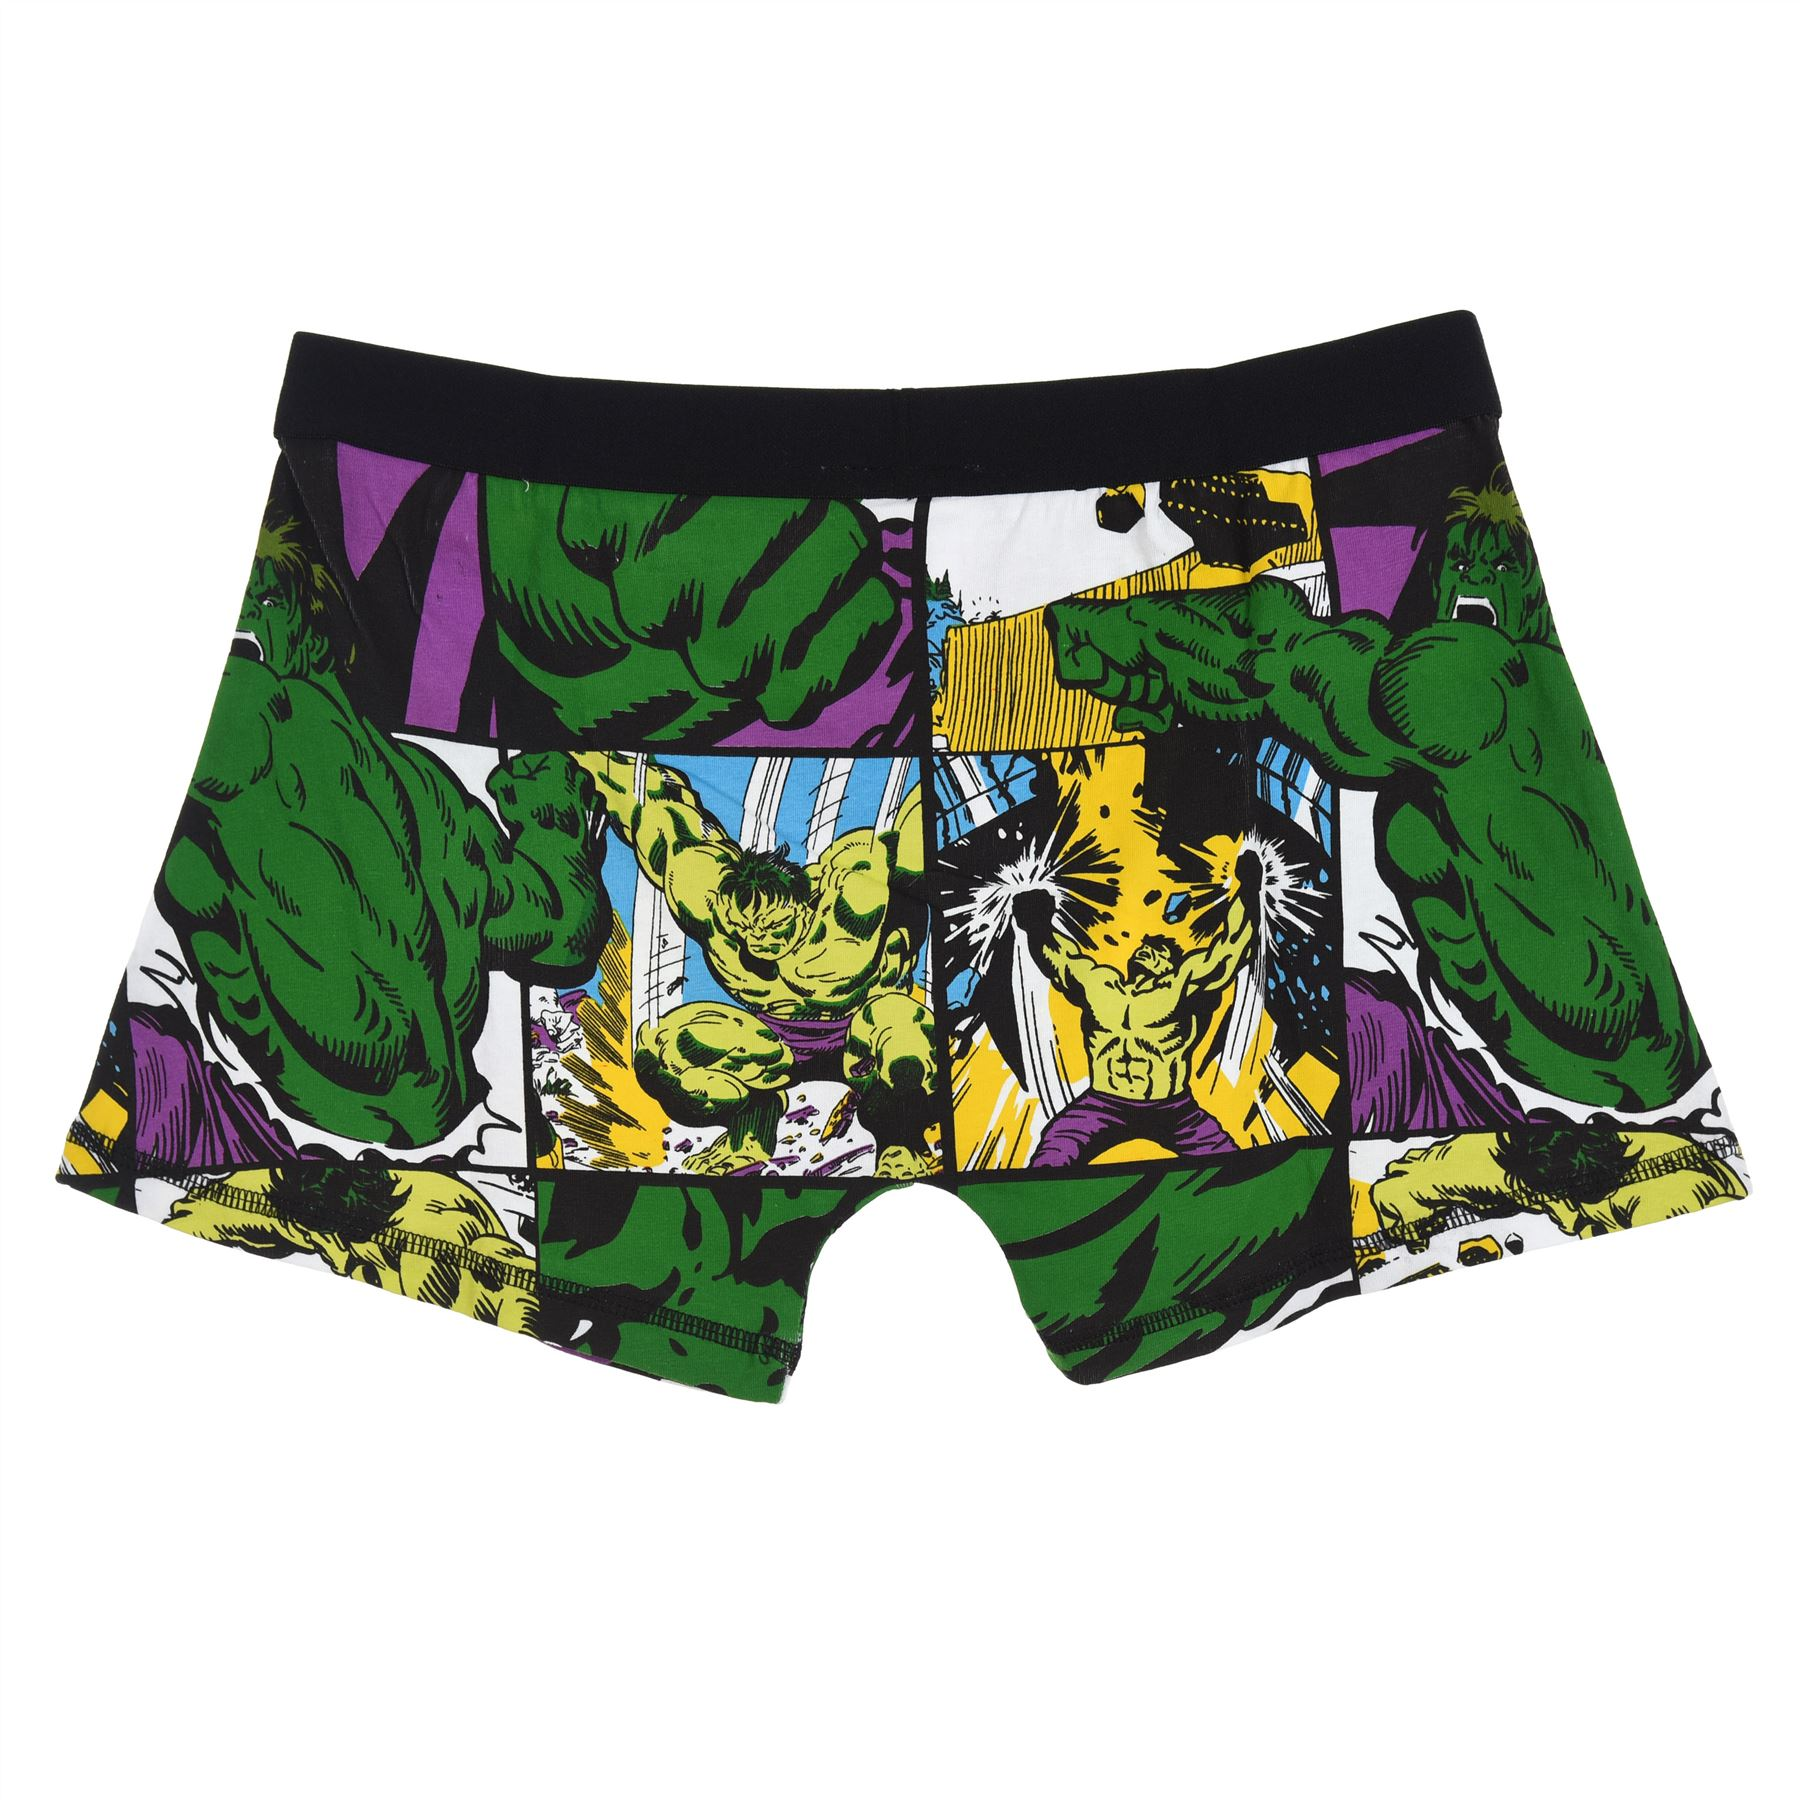 Mens-Official-Character-Trunks-Boxer-Shorts-Boxers-Underwear-2-Pack-Size-S-XL thumbnail 24